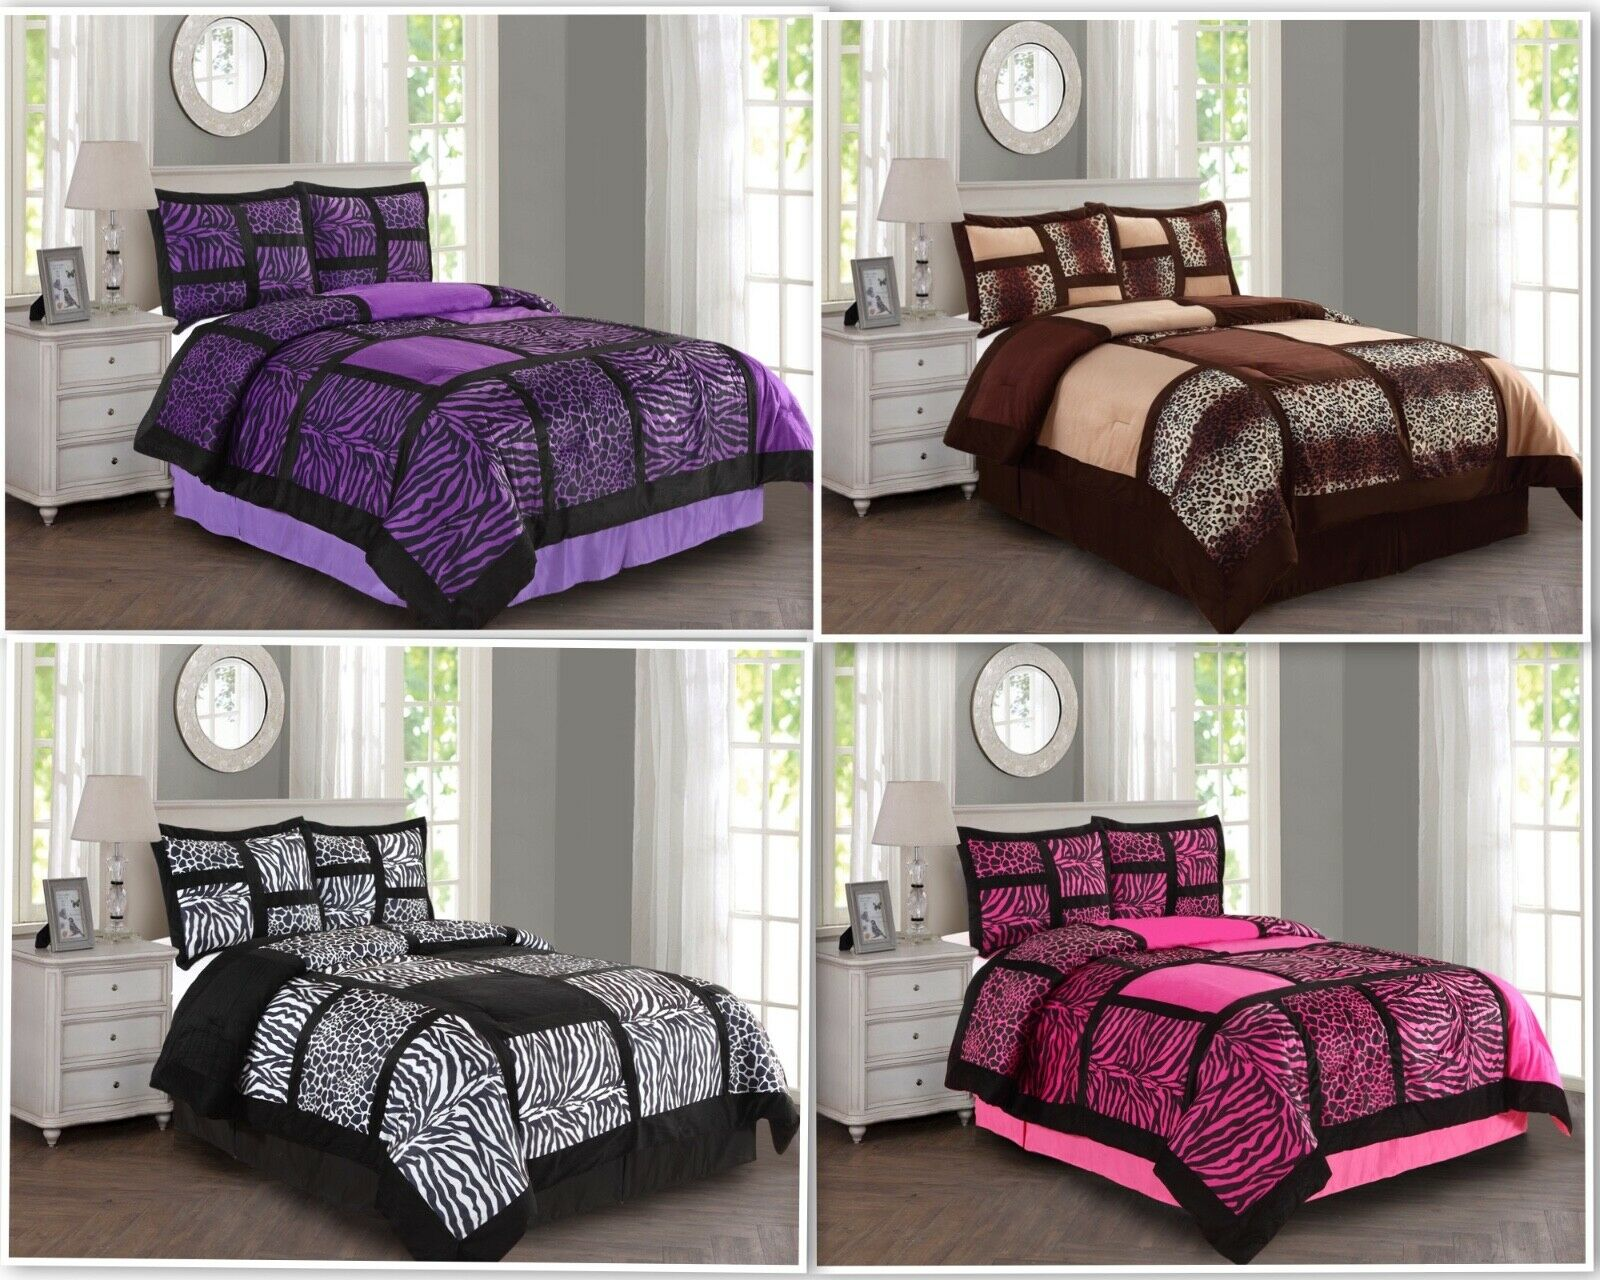 Chic Lassie Pleated Reversible 11 Piece Comforter Bed In A Bag Queen Brown For Sale Online Ebay